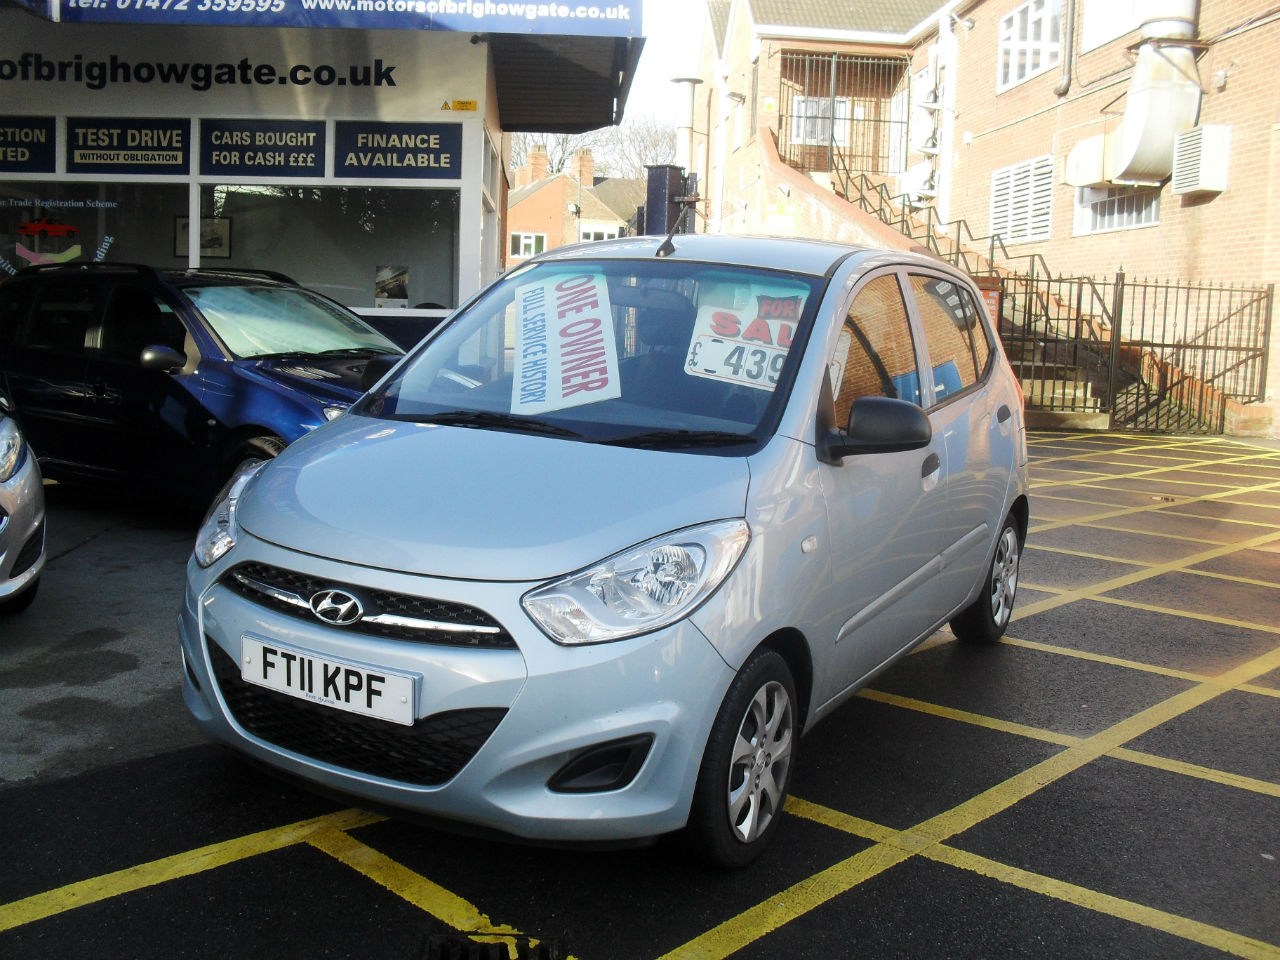 Hyundai i10 1.2 Classic 5dr Hatchback Petrol Silver/blue at Motors of Brighowgate Grimsby